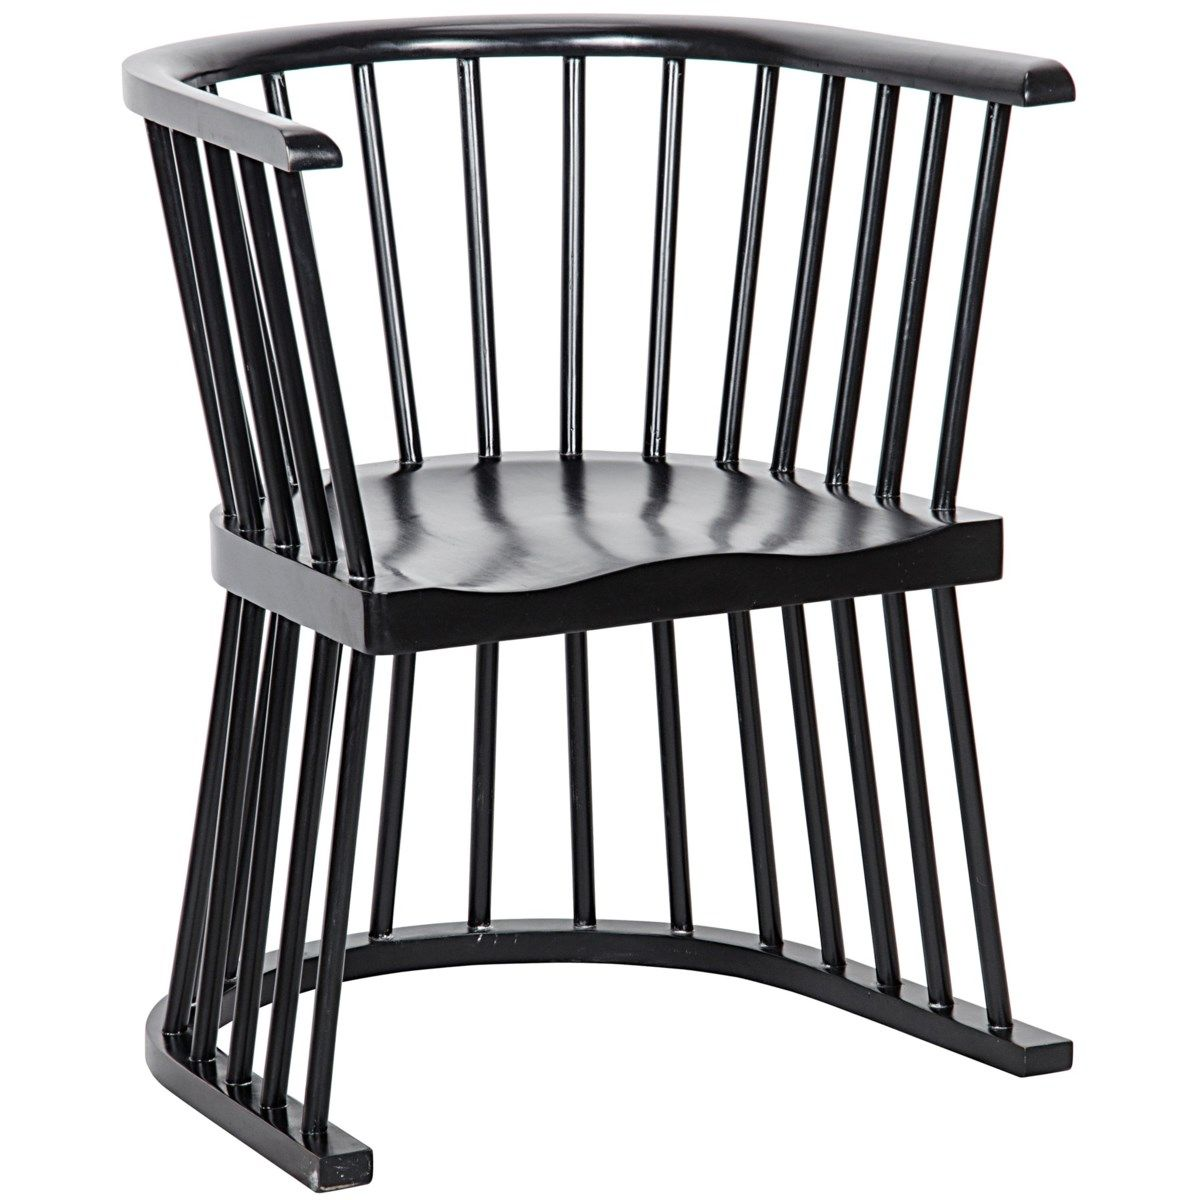 Bolah Chair, Hand Rubbed Black